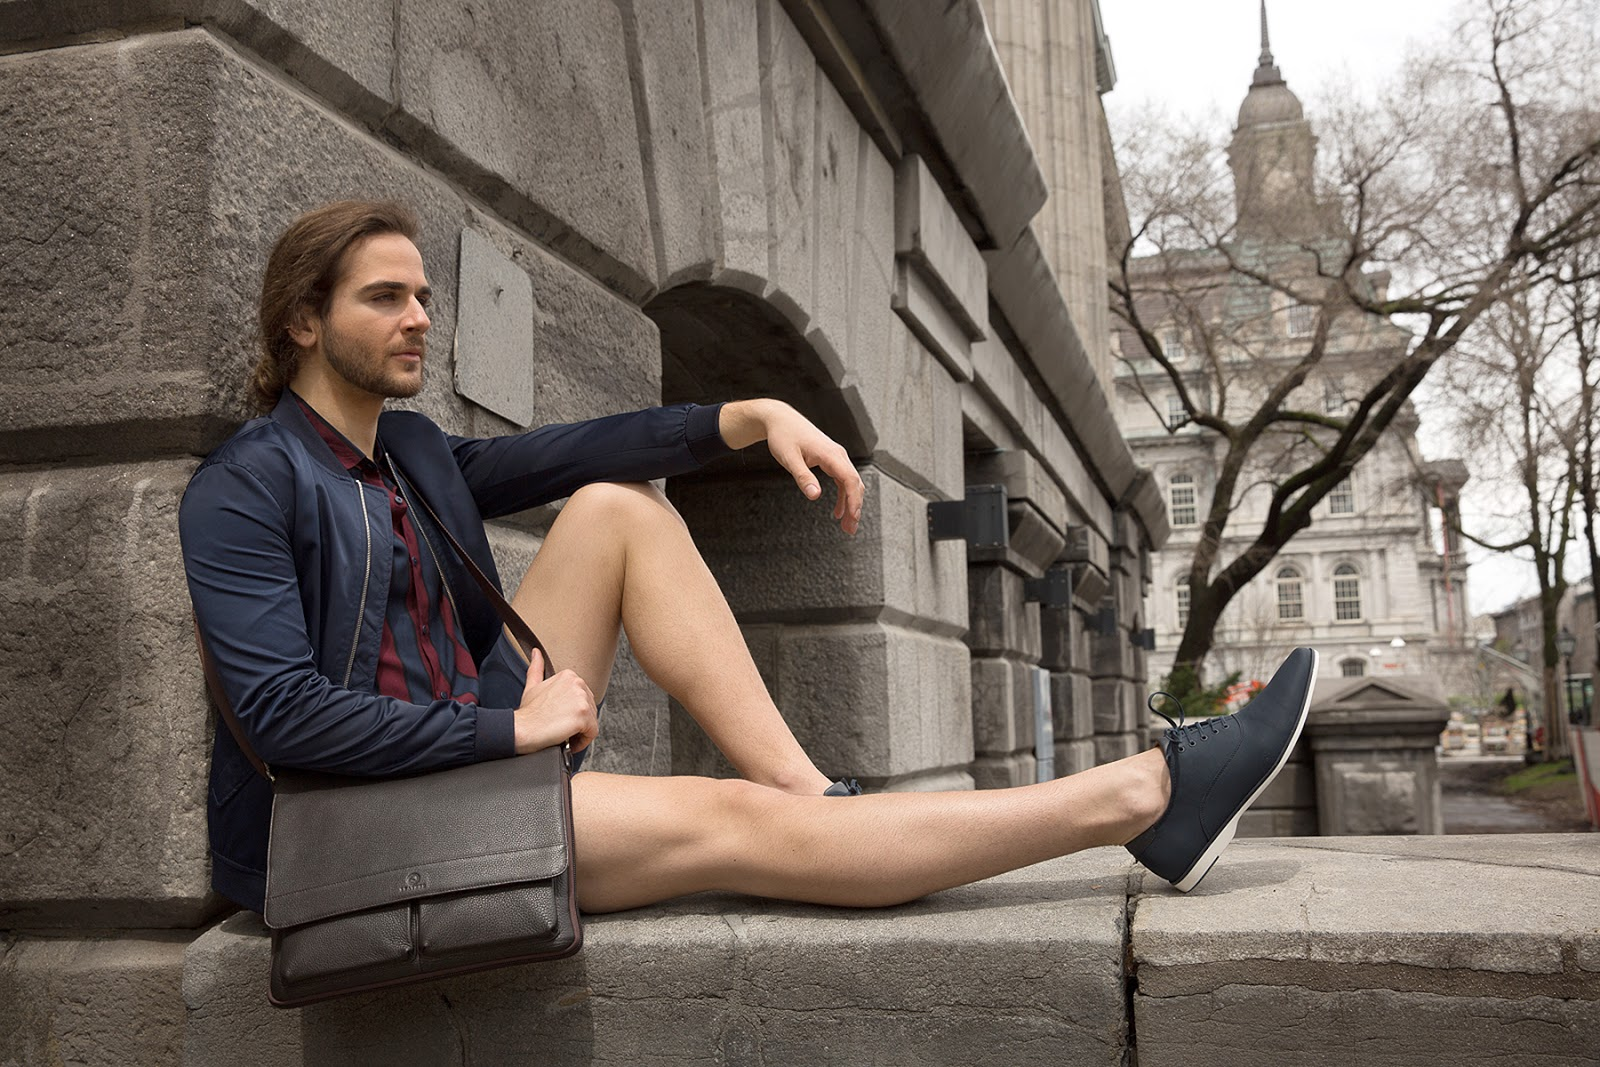 Leading Leather Brand Mcjim Shoots New Ad Campaign In Montreal Canada Bettina Heels Belka Black Hitam 39 Classic Leathers Authentic Bags Never Go Out Of Style Whether Official Businesses Or Casual Gatherings